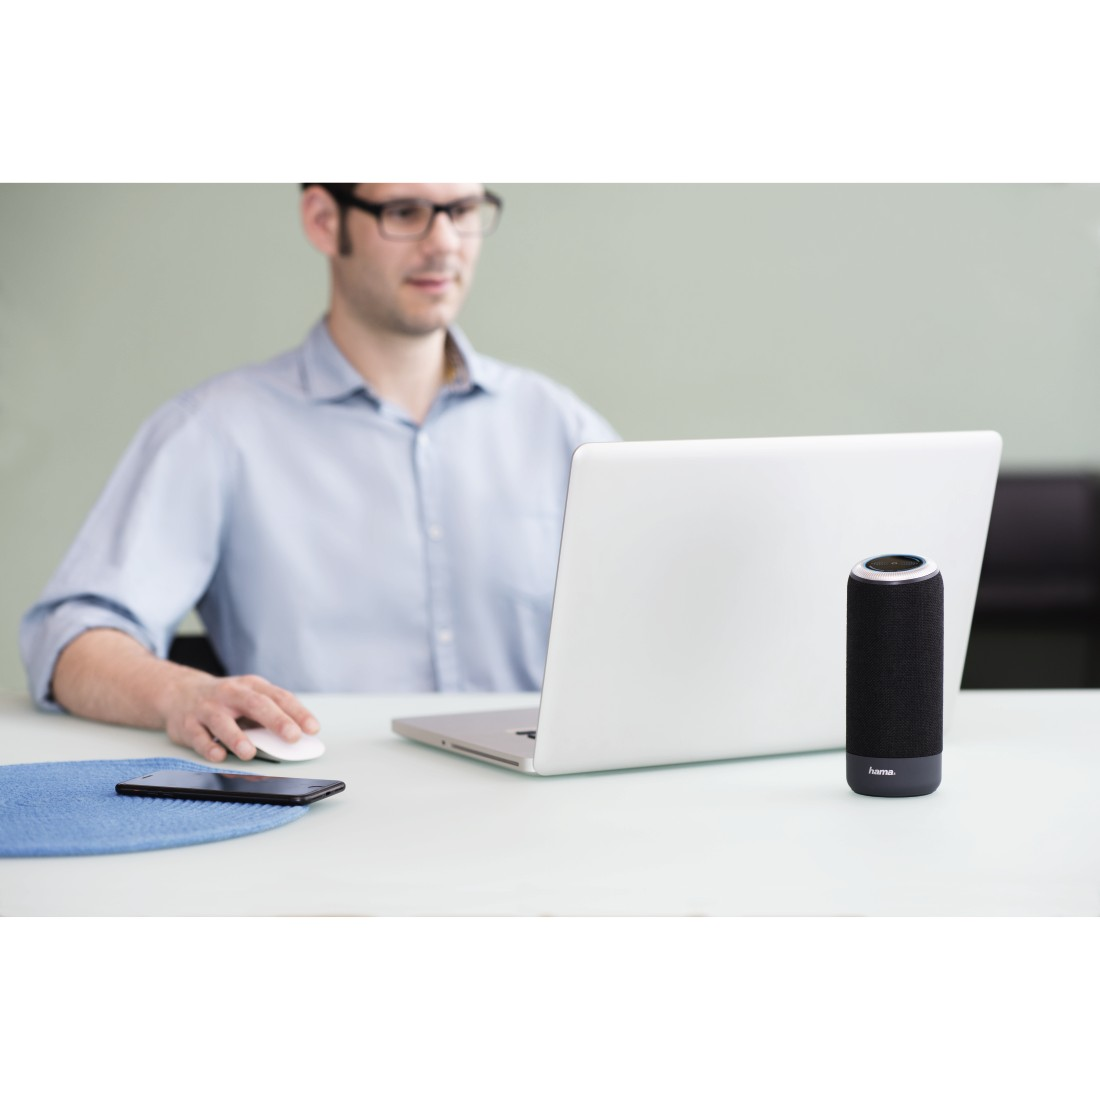 awx3 High-Res Appliance 3 - Hama, Mobiele Bluetooth-luidspreker Soundcup-S